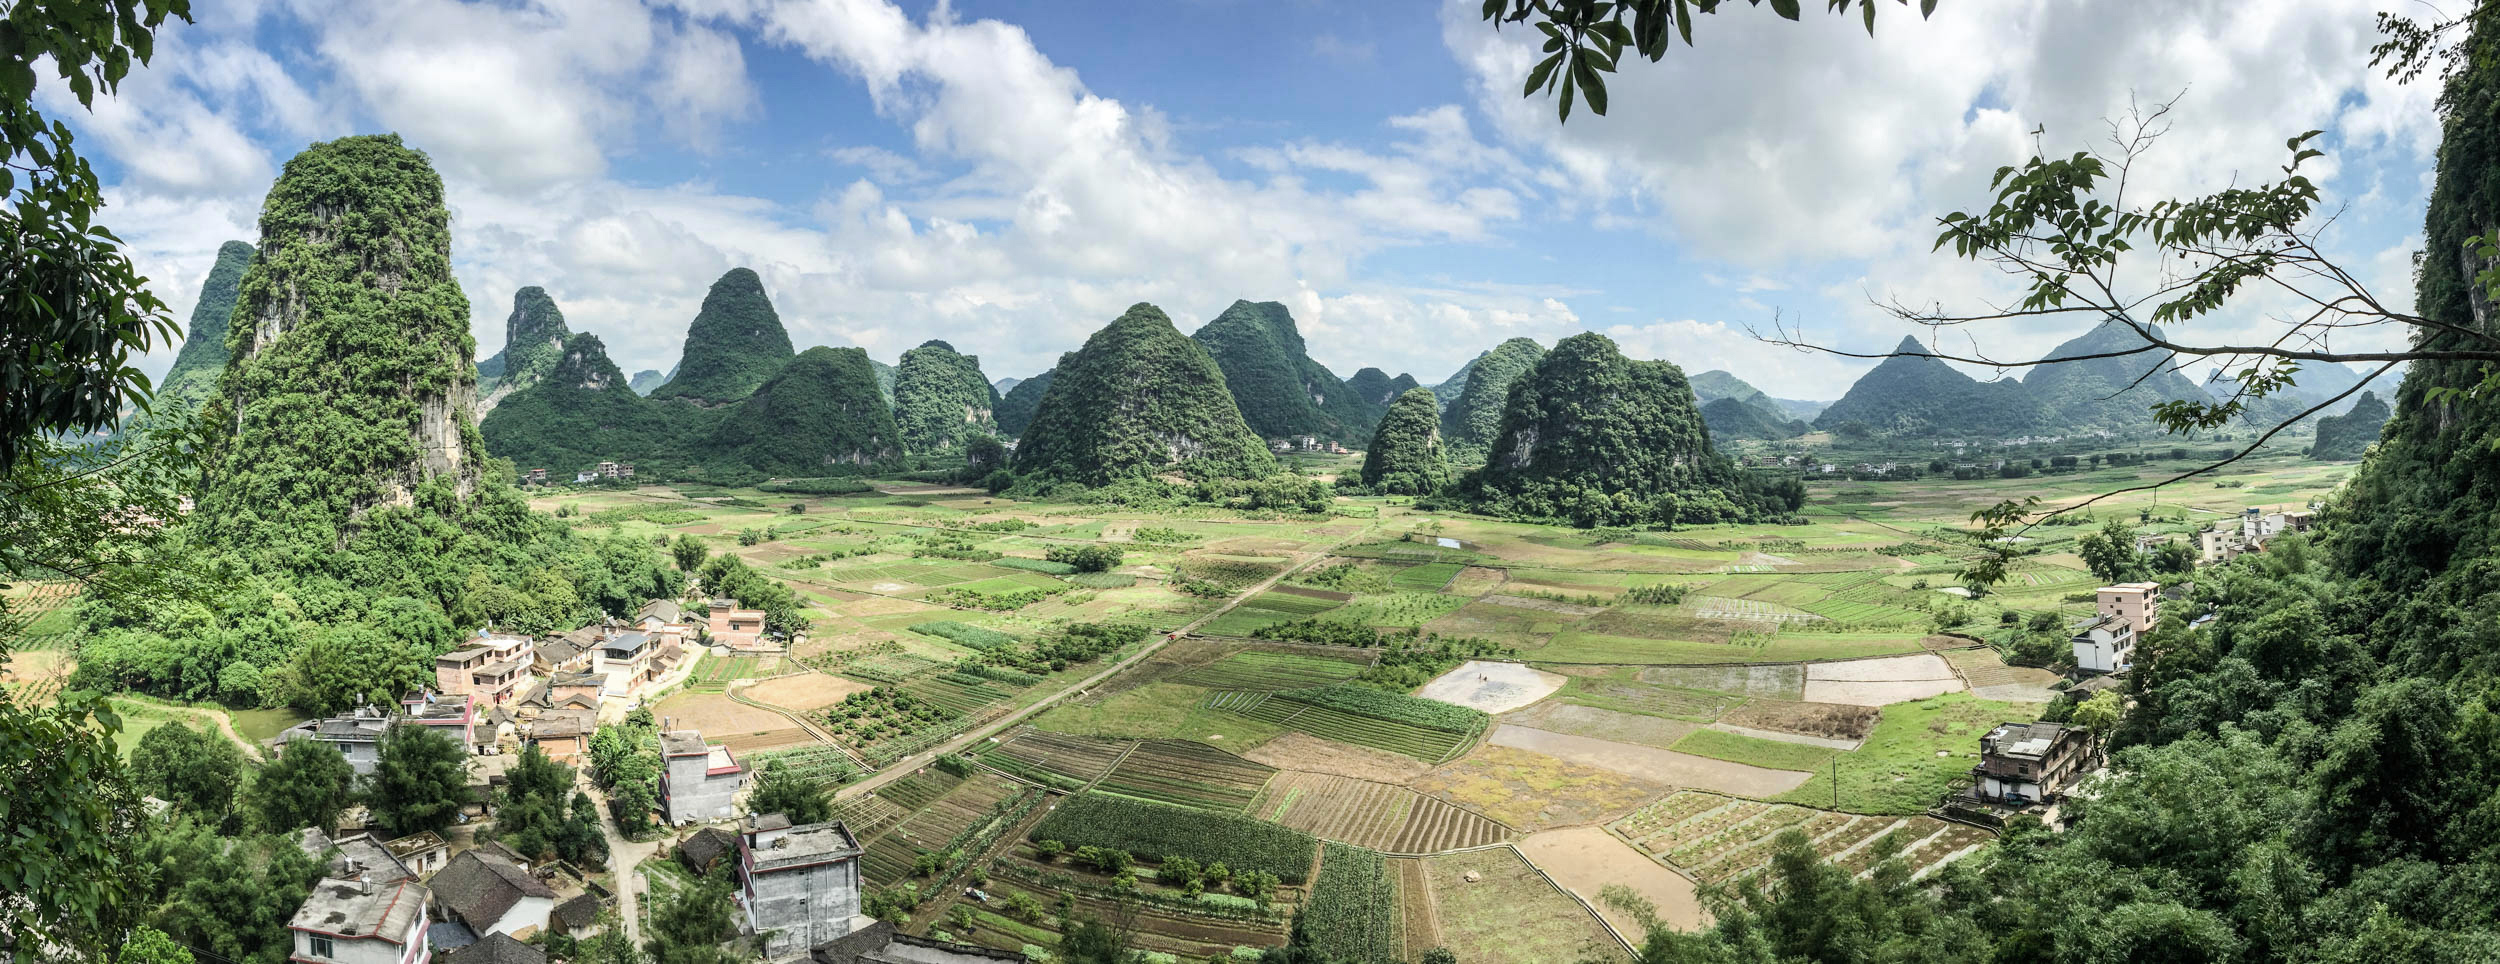 View from Area 51 climbing crag, Yangshuo